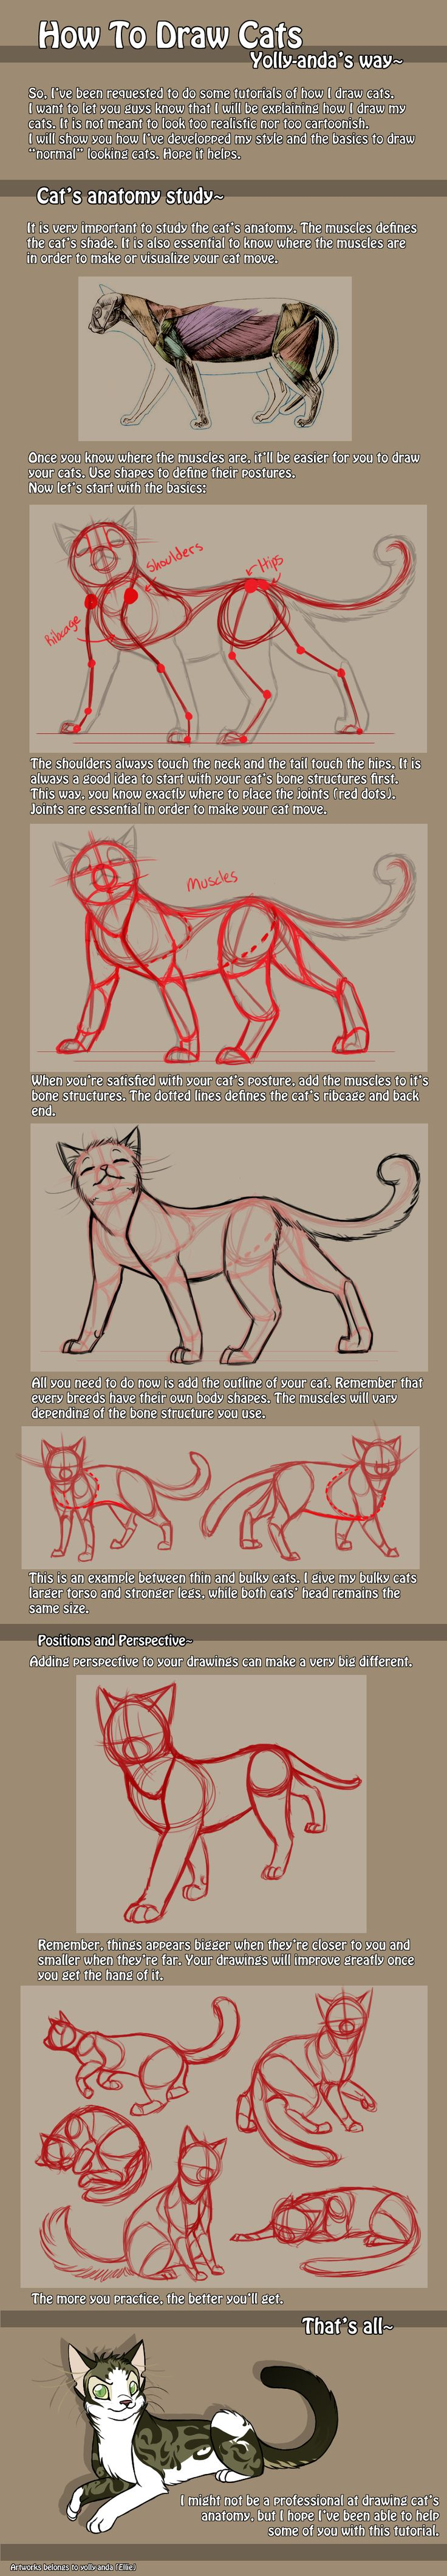 How to draw cats - anatomy by *Yolly-anda on deviantART ✤ || CHARACTER DESIGN REFERENCES | 解剖 • علم التشريح • анатомия • 解剖学 • anatómia • एनाटॉमी • ανατομία • 해부 • Find more at https://www.facebook.com/CharacterDesignReferences & http://www.pinterest.com/characterdesigh if you're looking for: #anatomy #anatomie #anatomia #anatomía #anatomya #anatomija #anatoomia #anatomi #anatomija #animal #creature || ✤